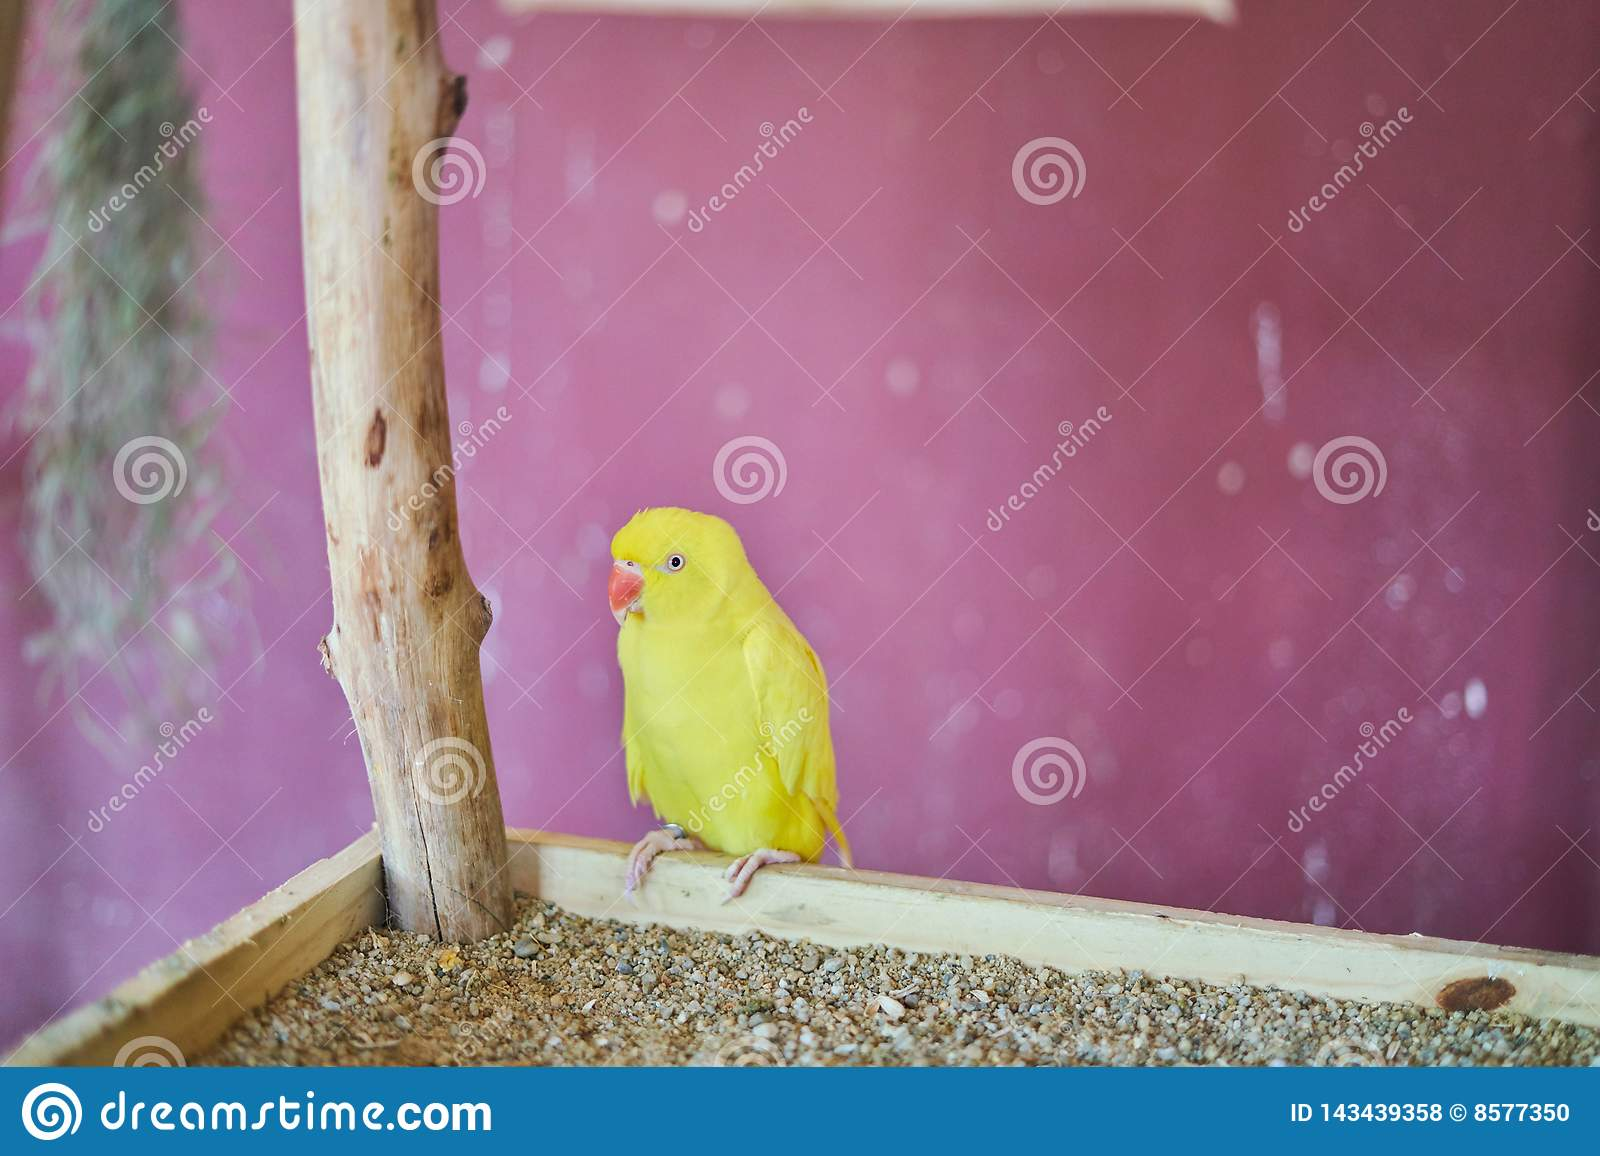 Yellow parrot sitting on a branch